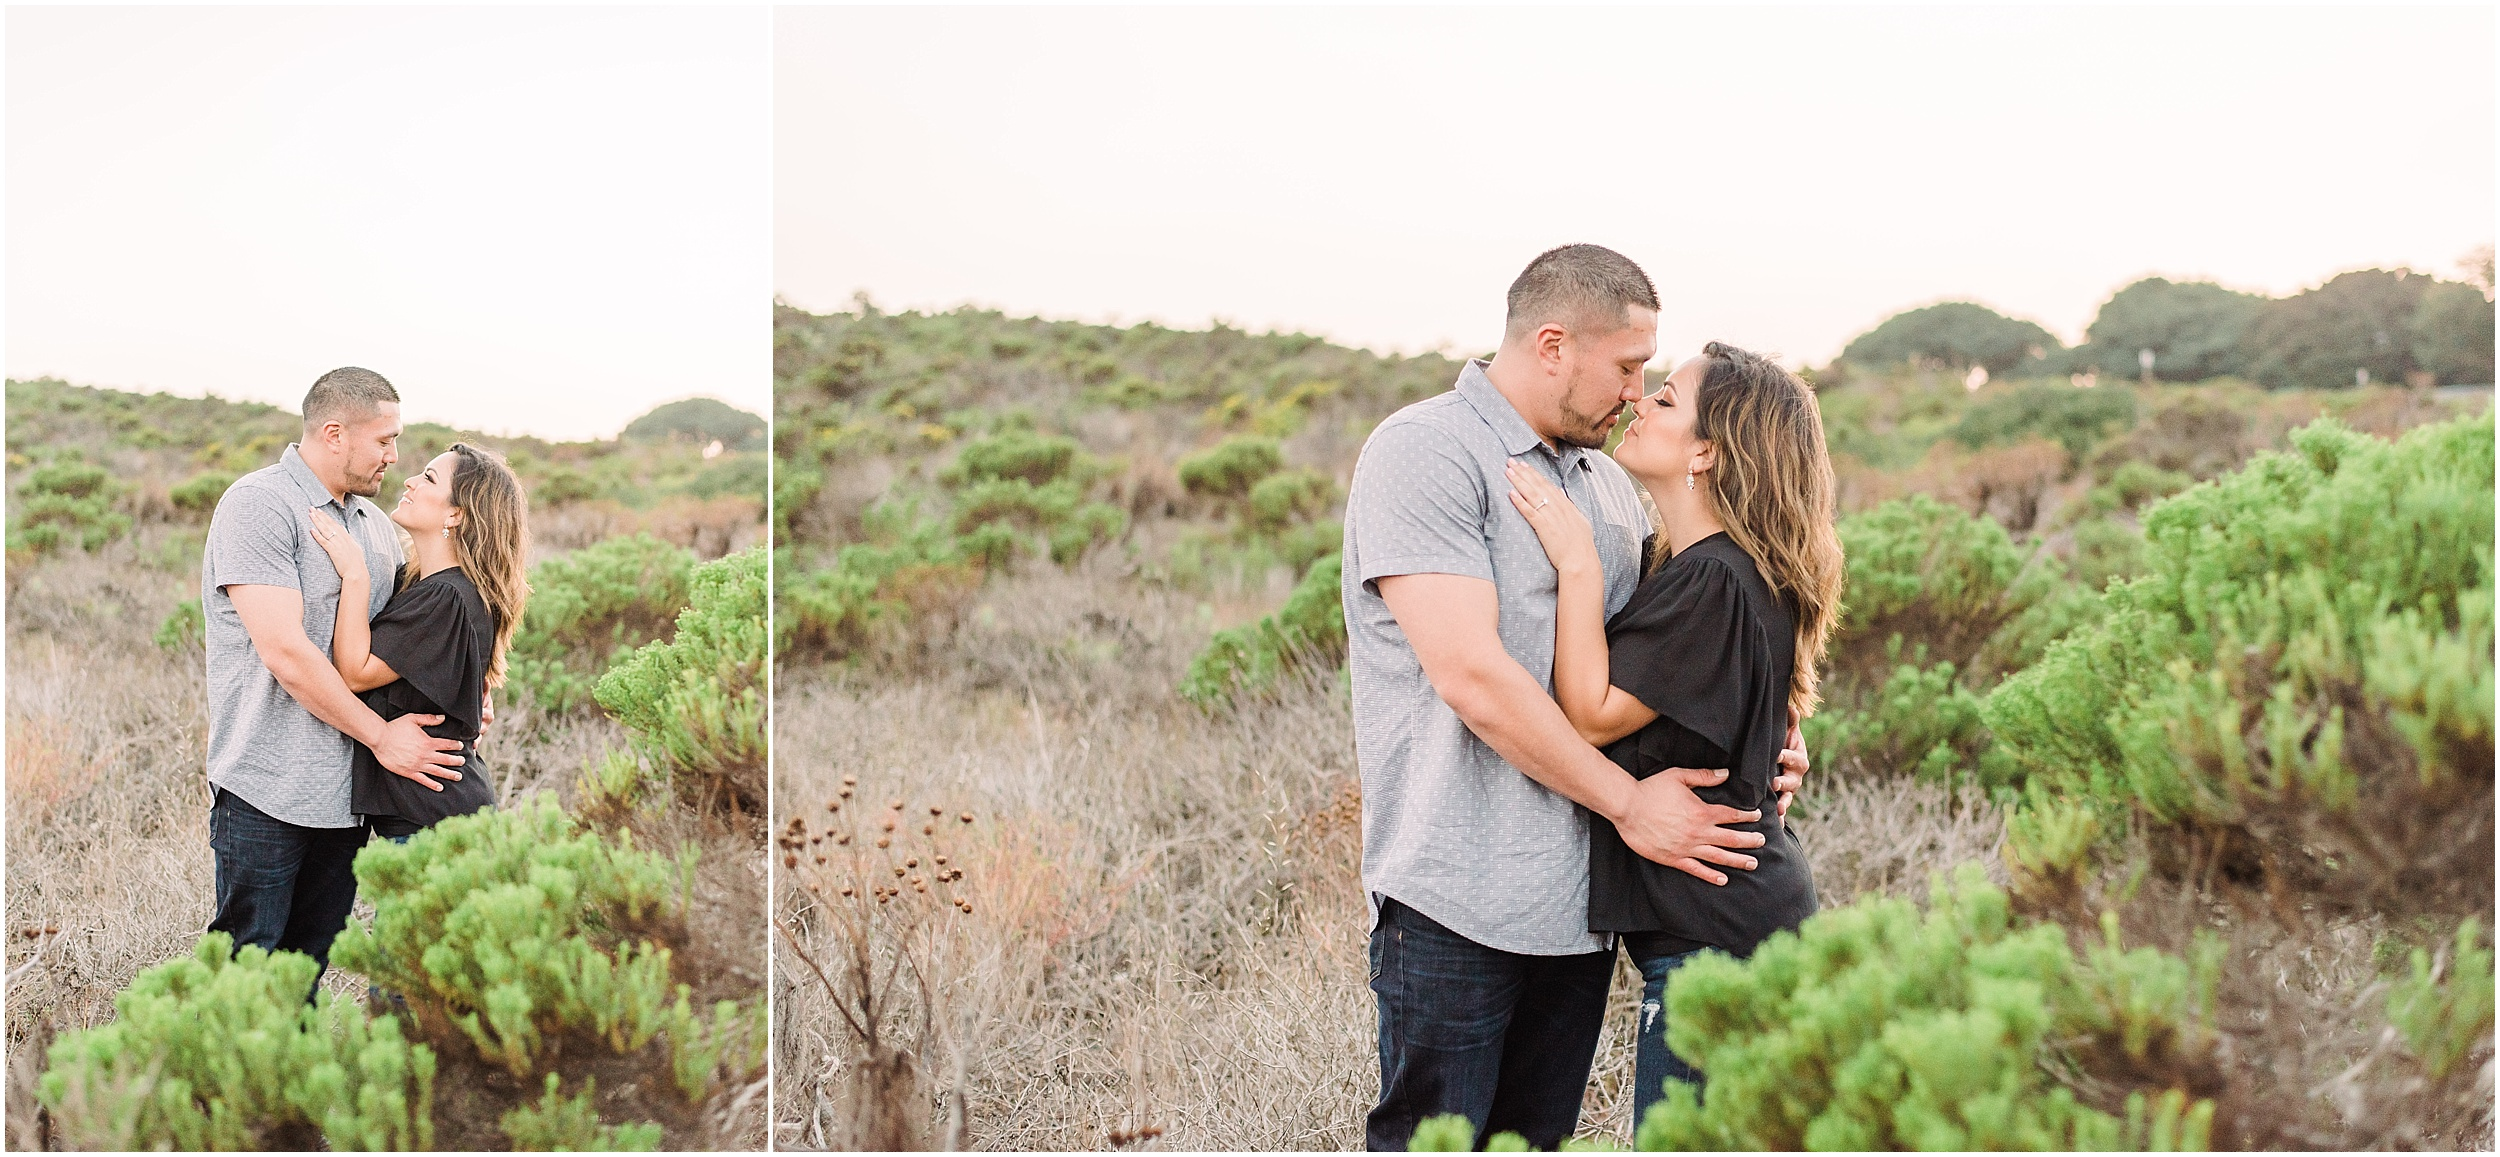 Engagement-Session-in-Malibu-California-Valeria-Gonzalez-Photography-Wedding-and-Portrait-Photographer-Richmond-Virginia-Ventura-California_0015.jpg